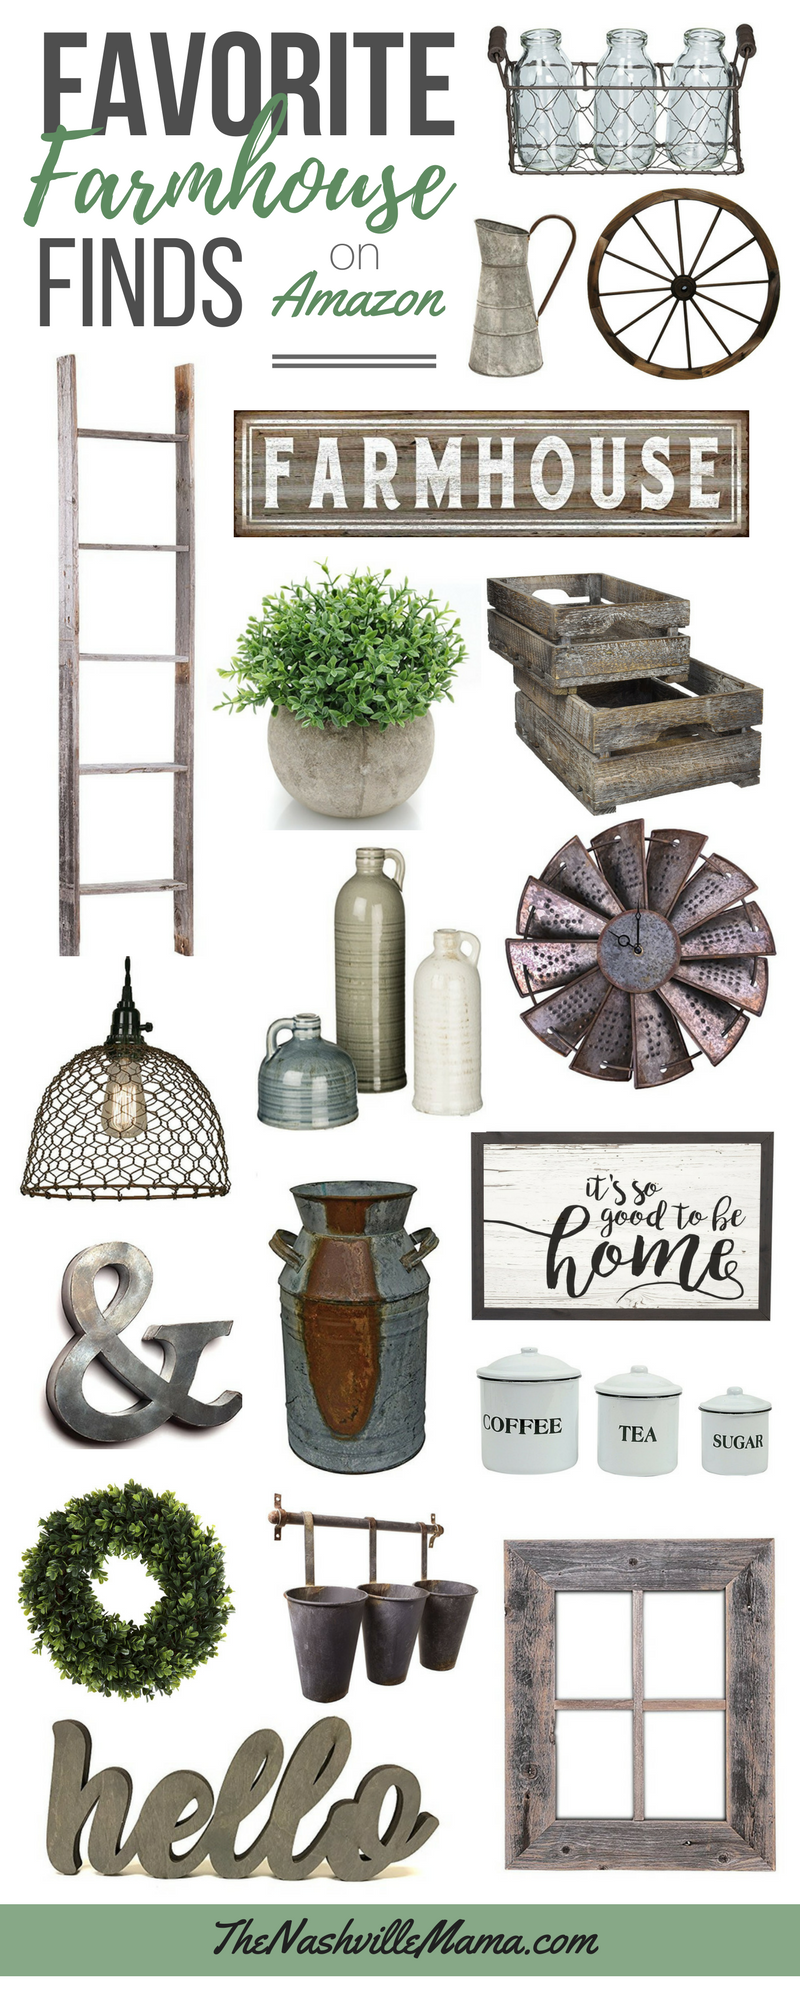 favorite farmhouse finds for your home fixer upper style home pinterest haus bauernhaus. Black Bedroom Furniture Sets. Home Design Ideas